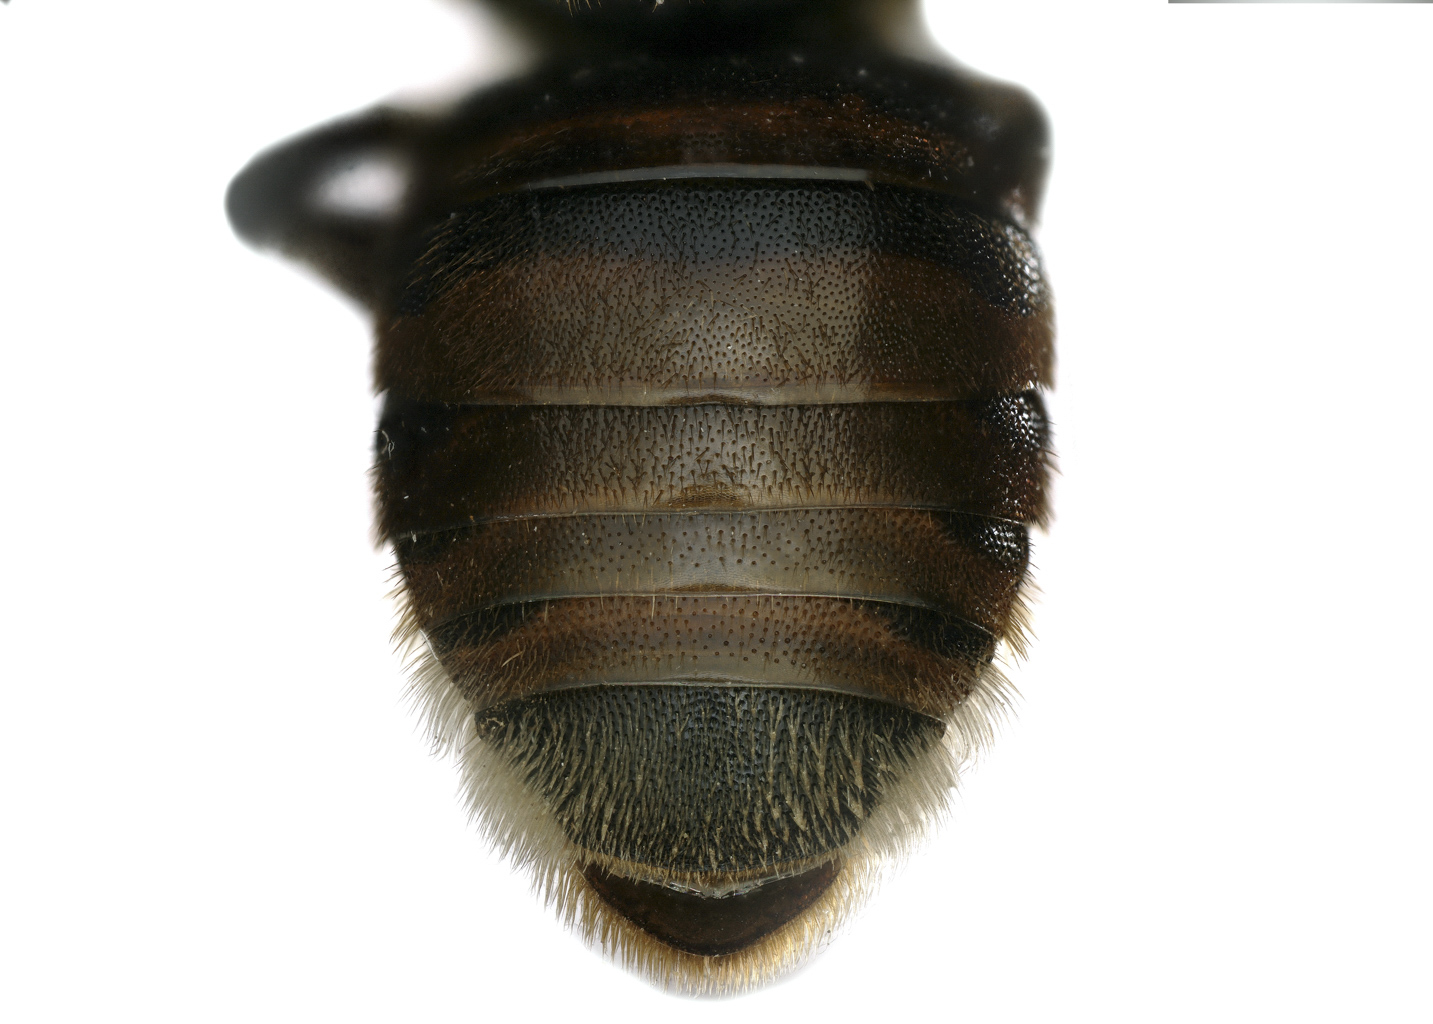 Fig 5.&nbsp;<em>Anthidiellum rufomaculatum</em> female abdomen.&nbsp;Photo:  C. Ritner